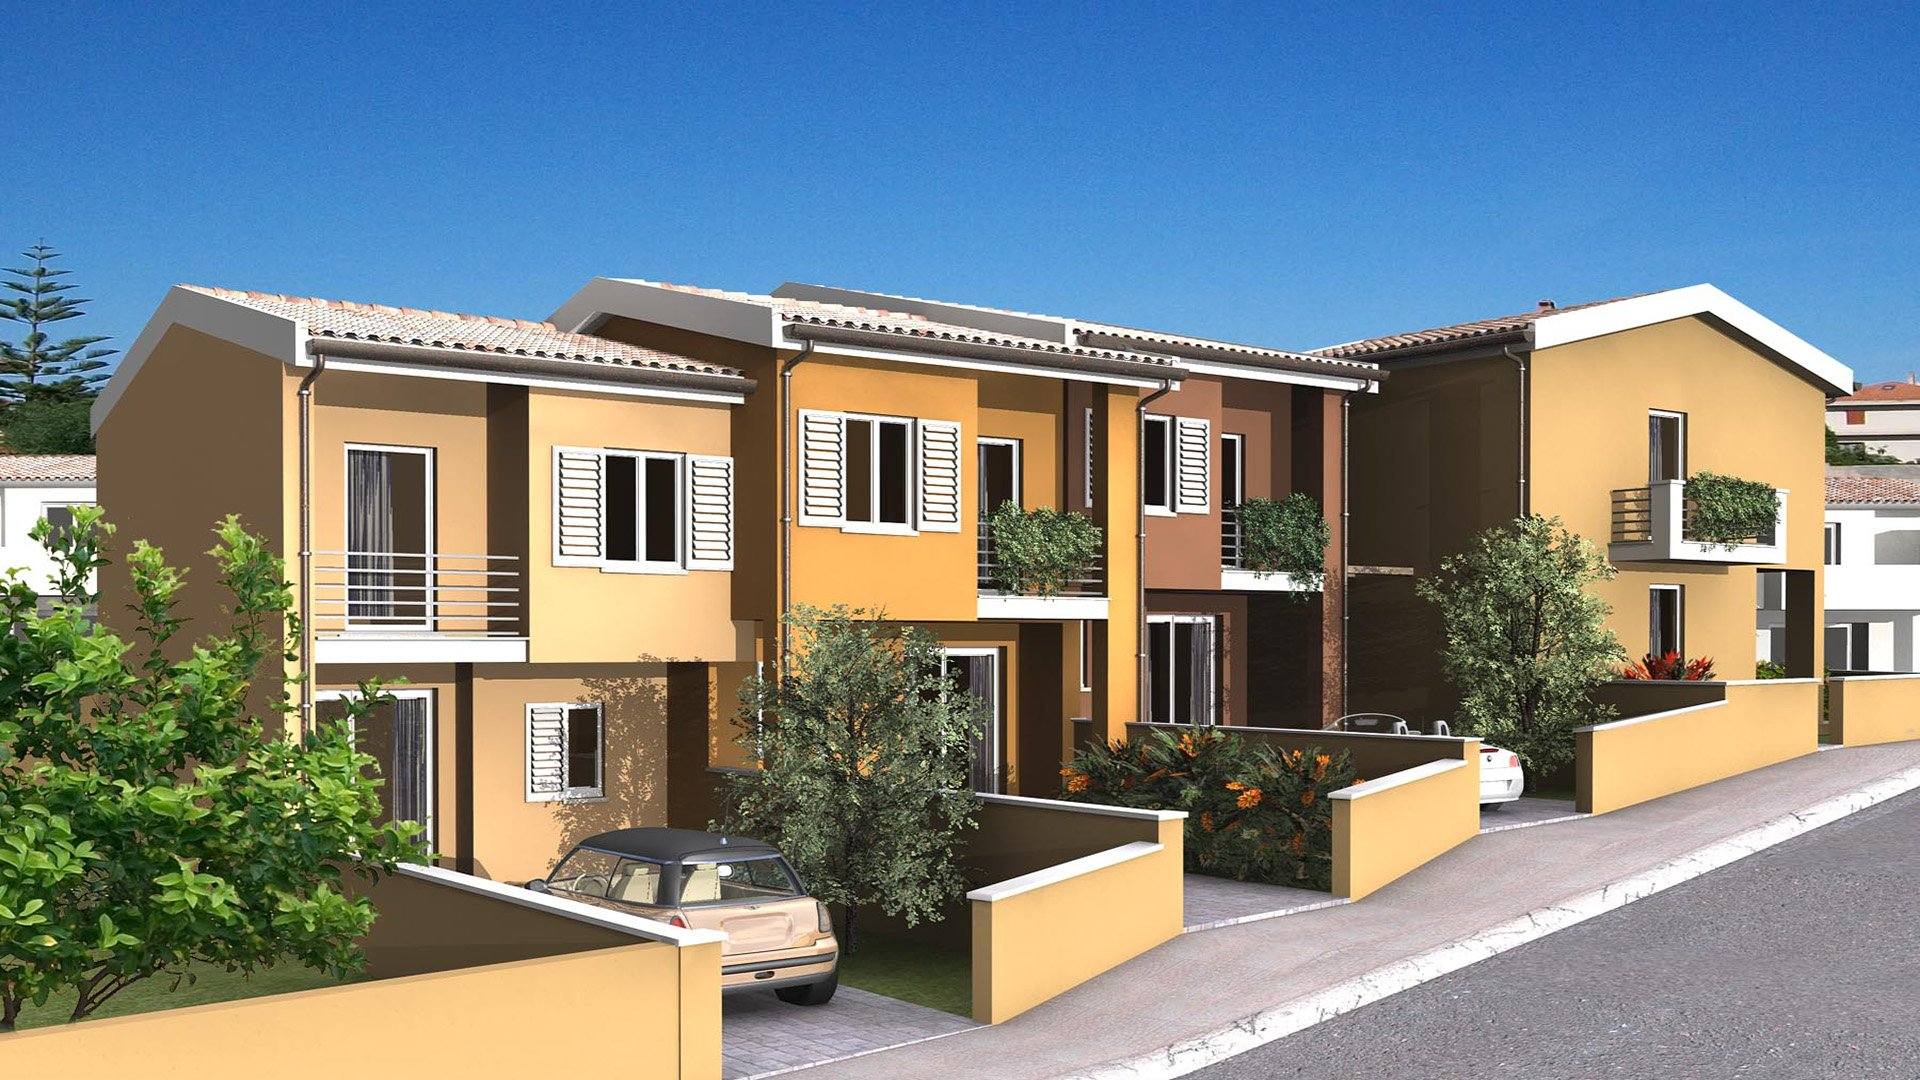 Looking to buy new property in Sardinia? Cheap terraced houses in Valledoria, beach at 5 minutes.